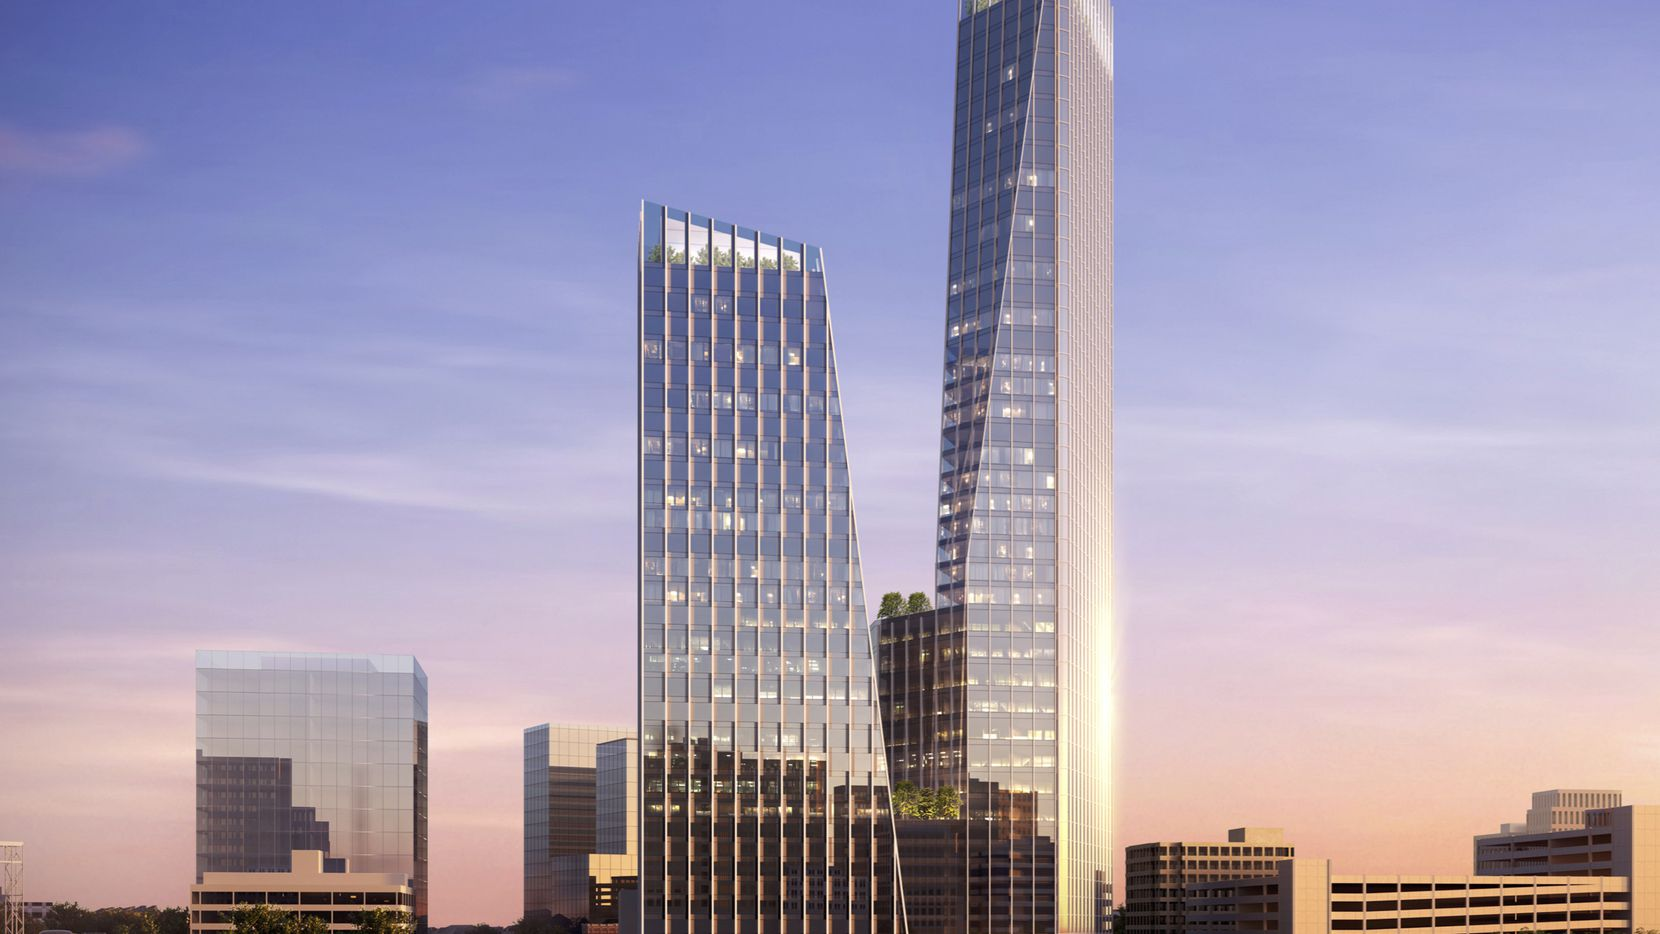 Dallas property and investor Scott Rohrman's 42 Real Estate is working on plans for a two-building skyscraper project at Elm and Pearl streets in downtown Dallas.